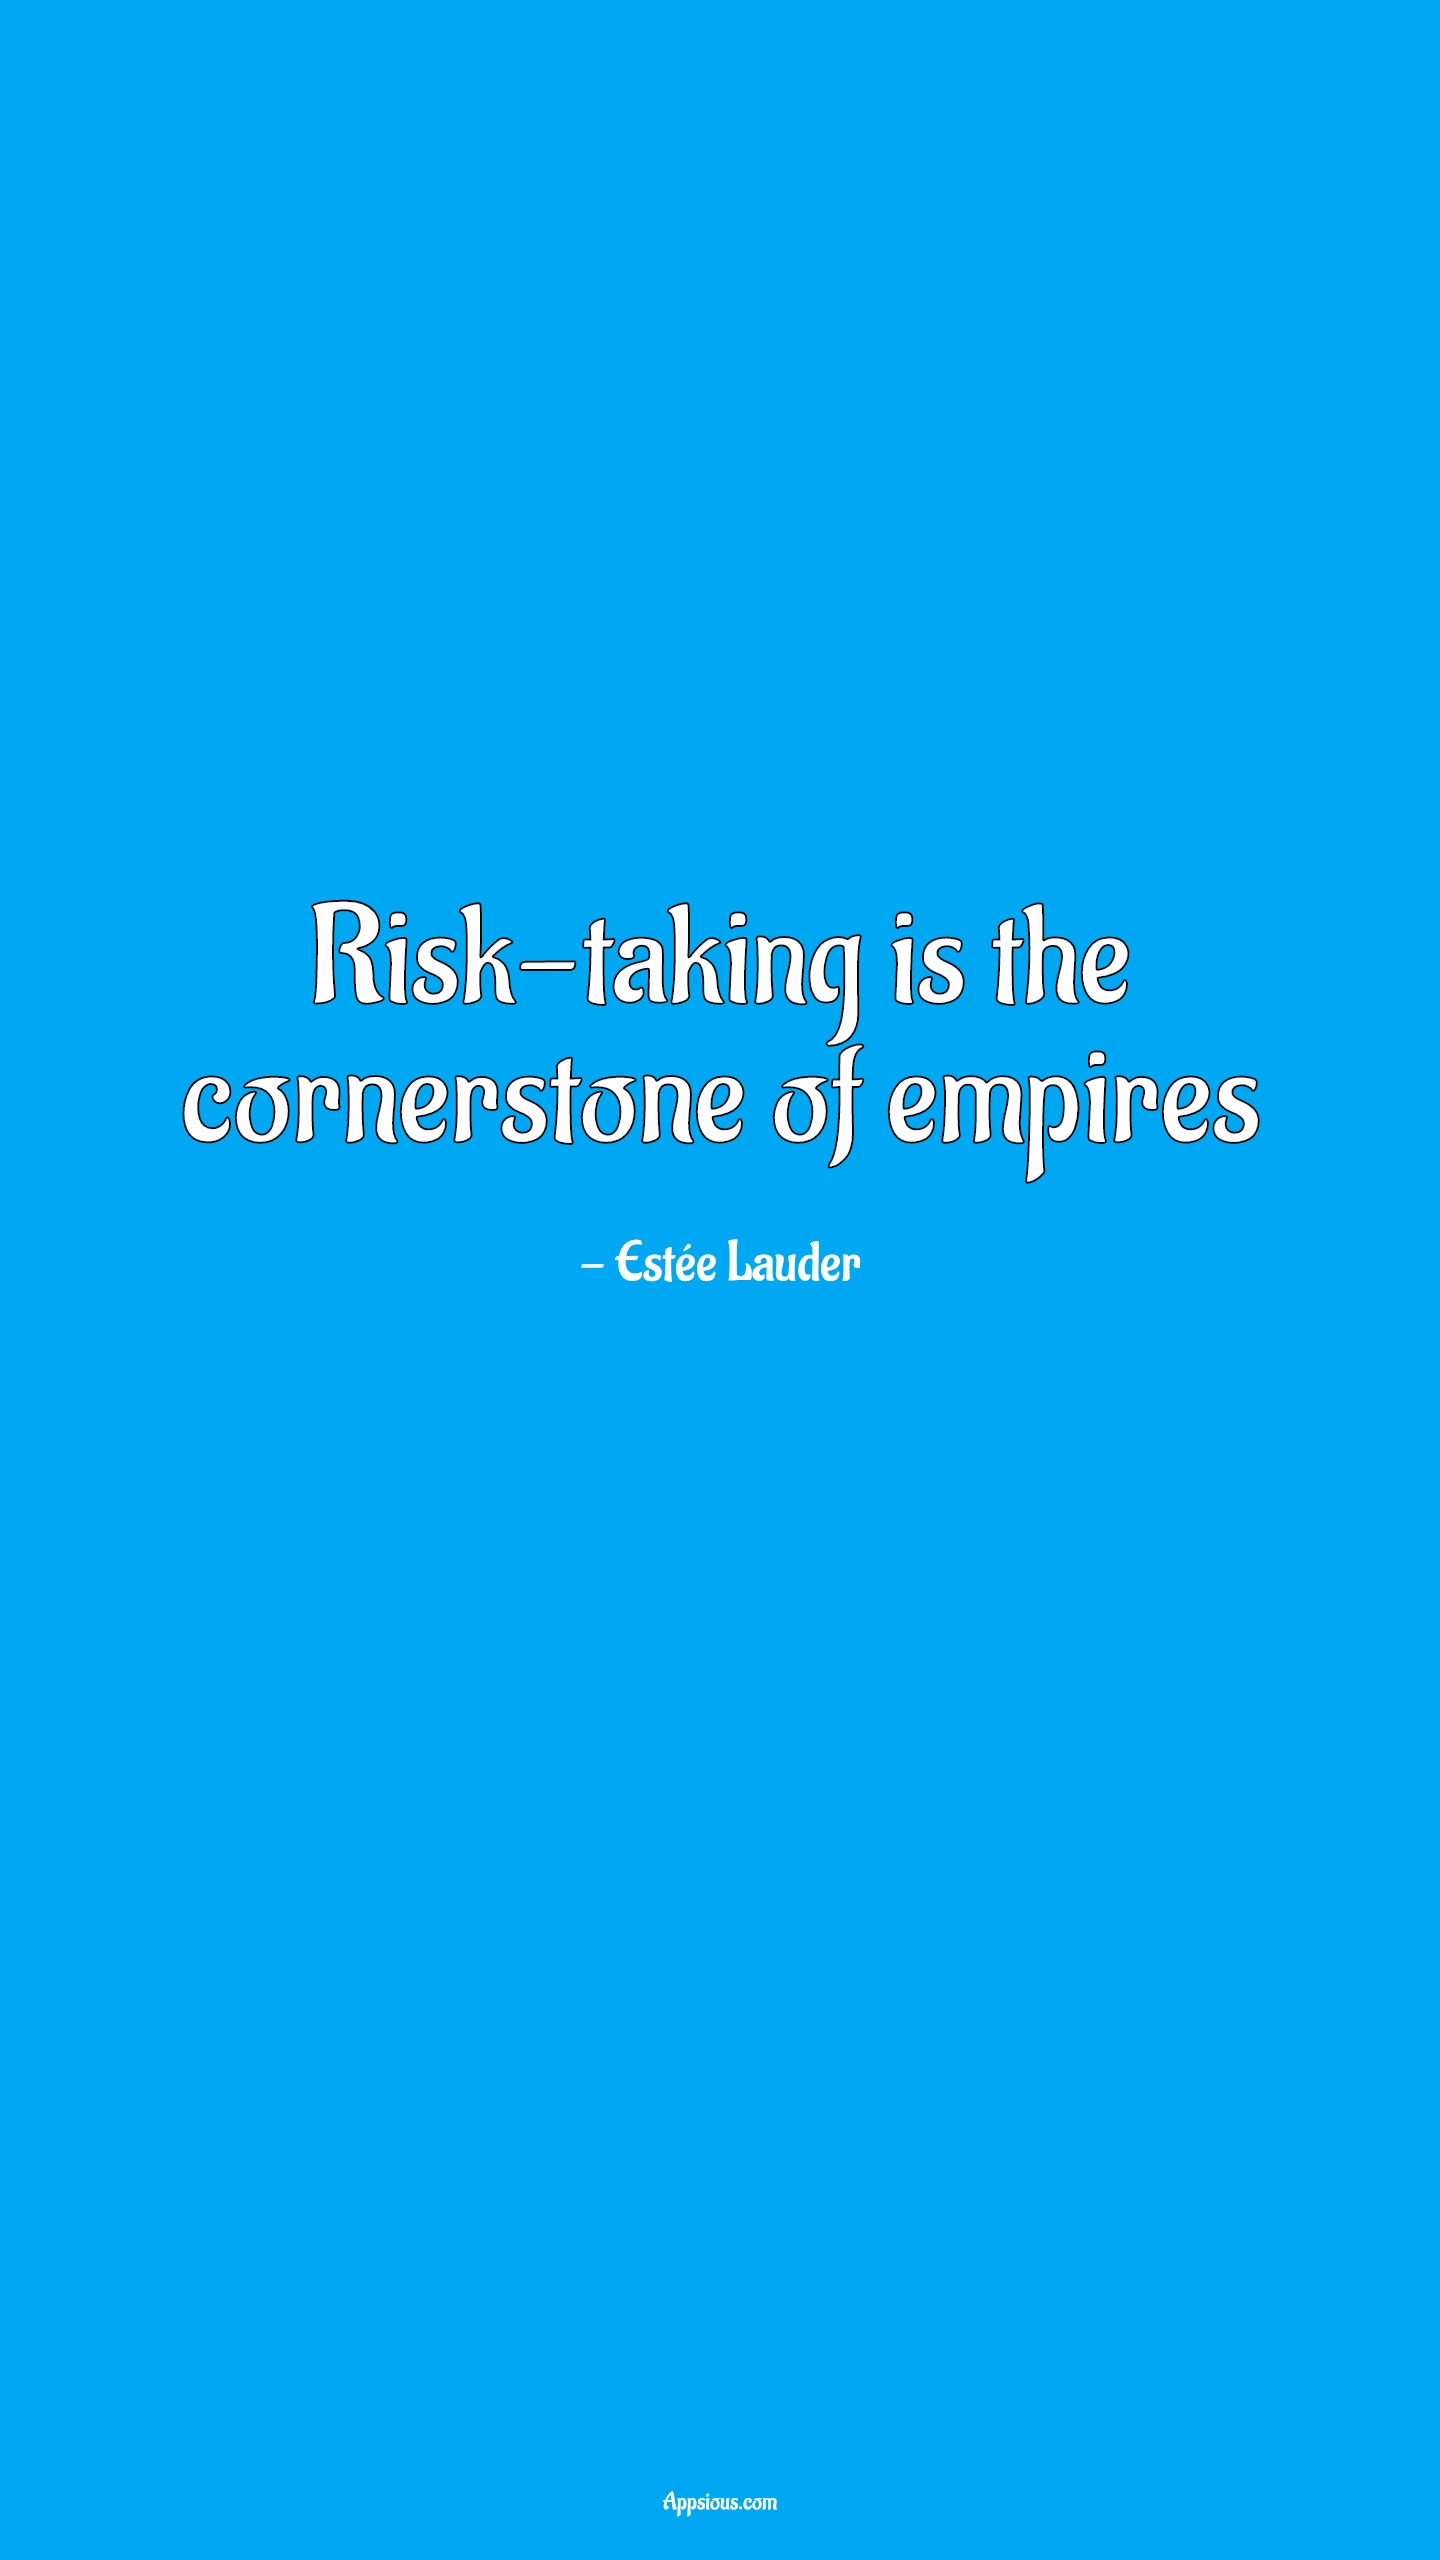 Risk-taking is the cornerstone of empires